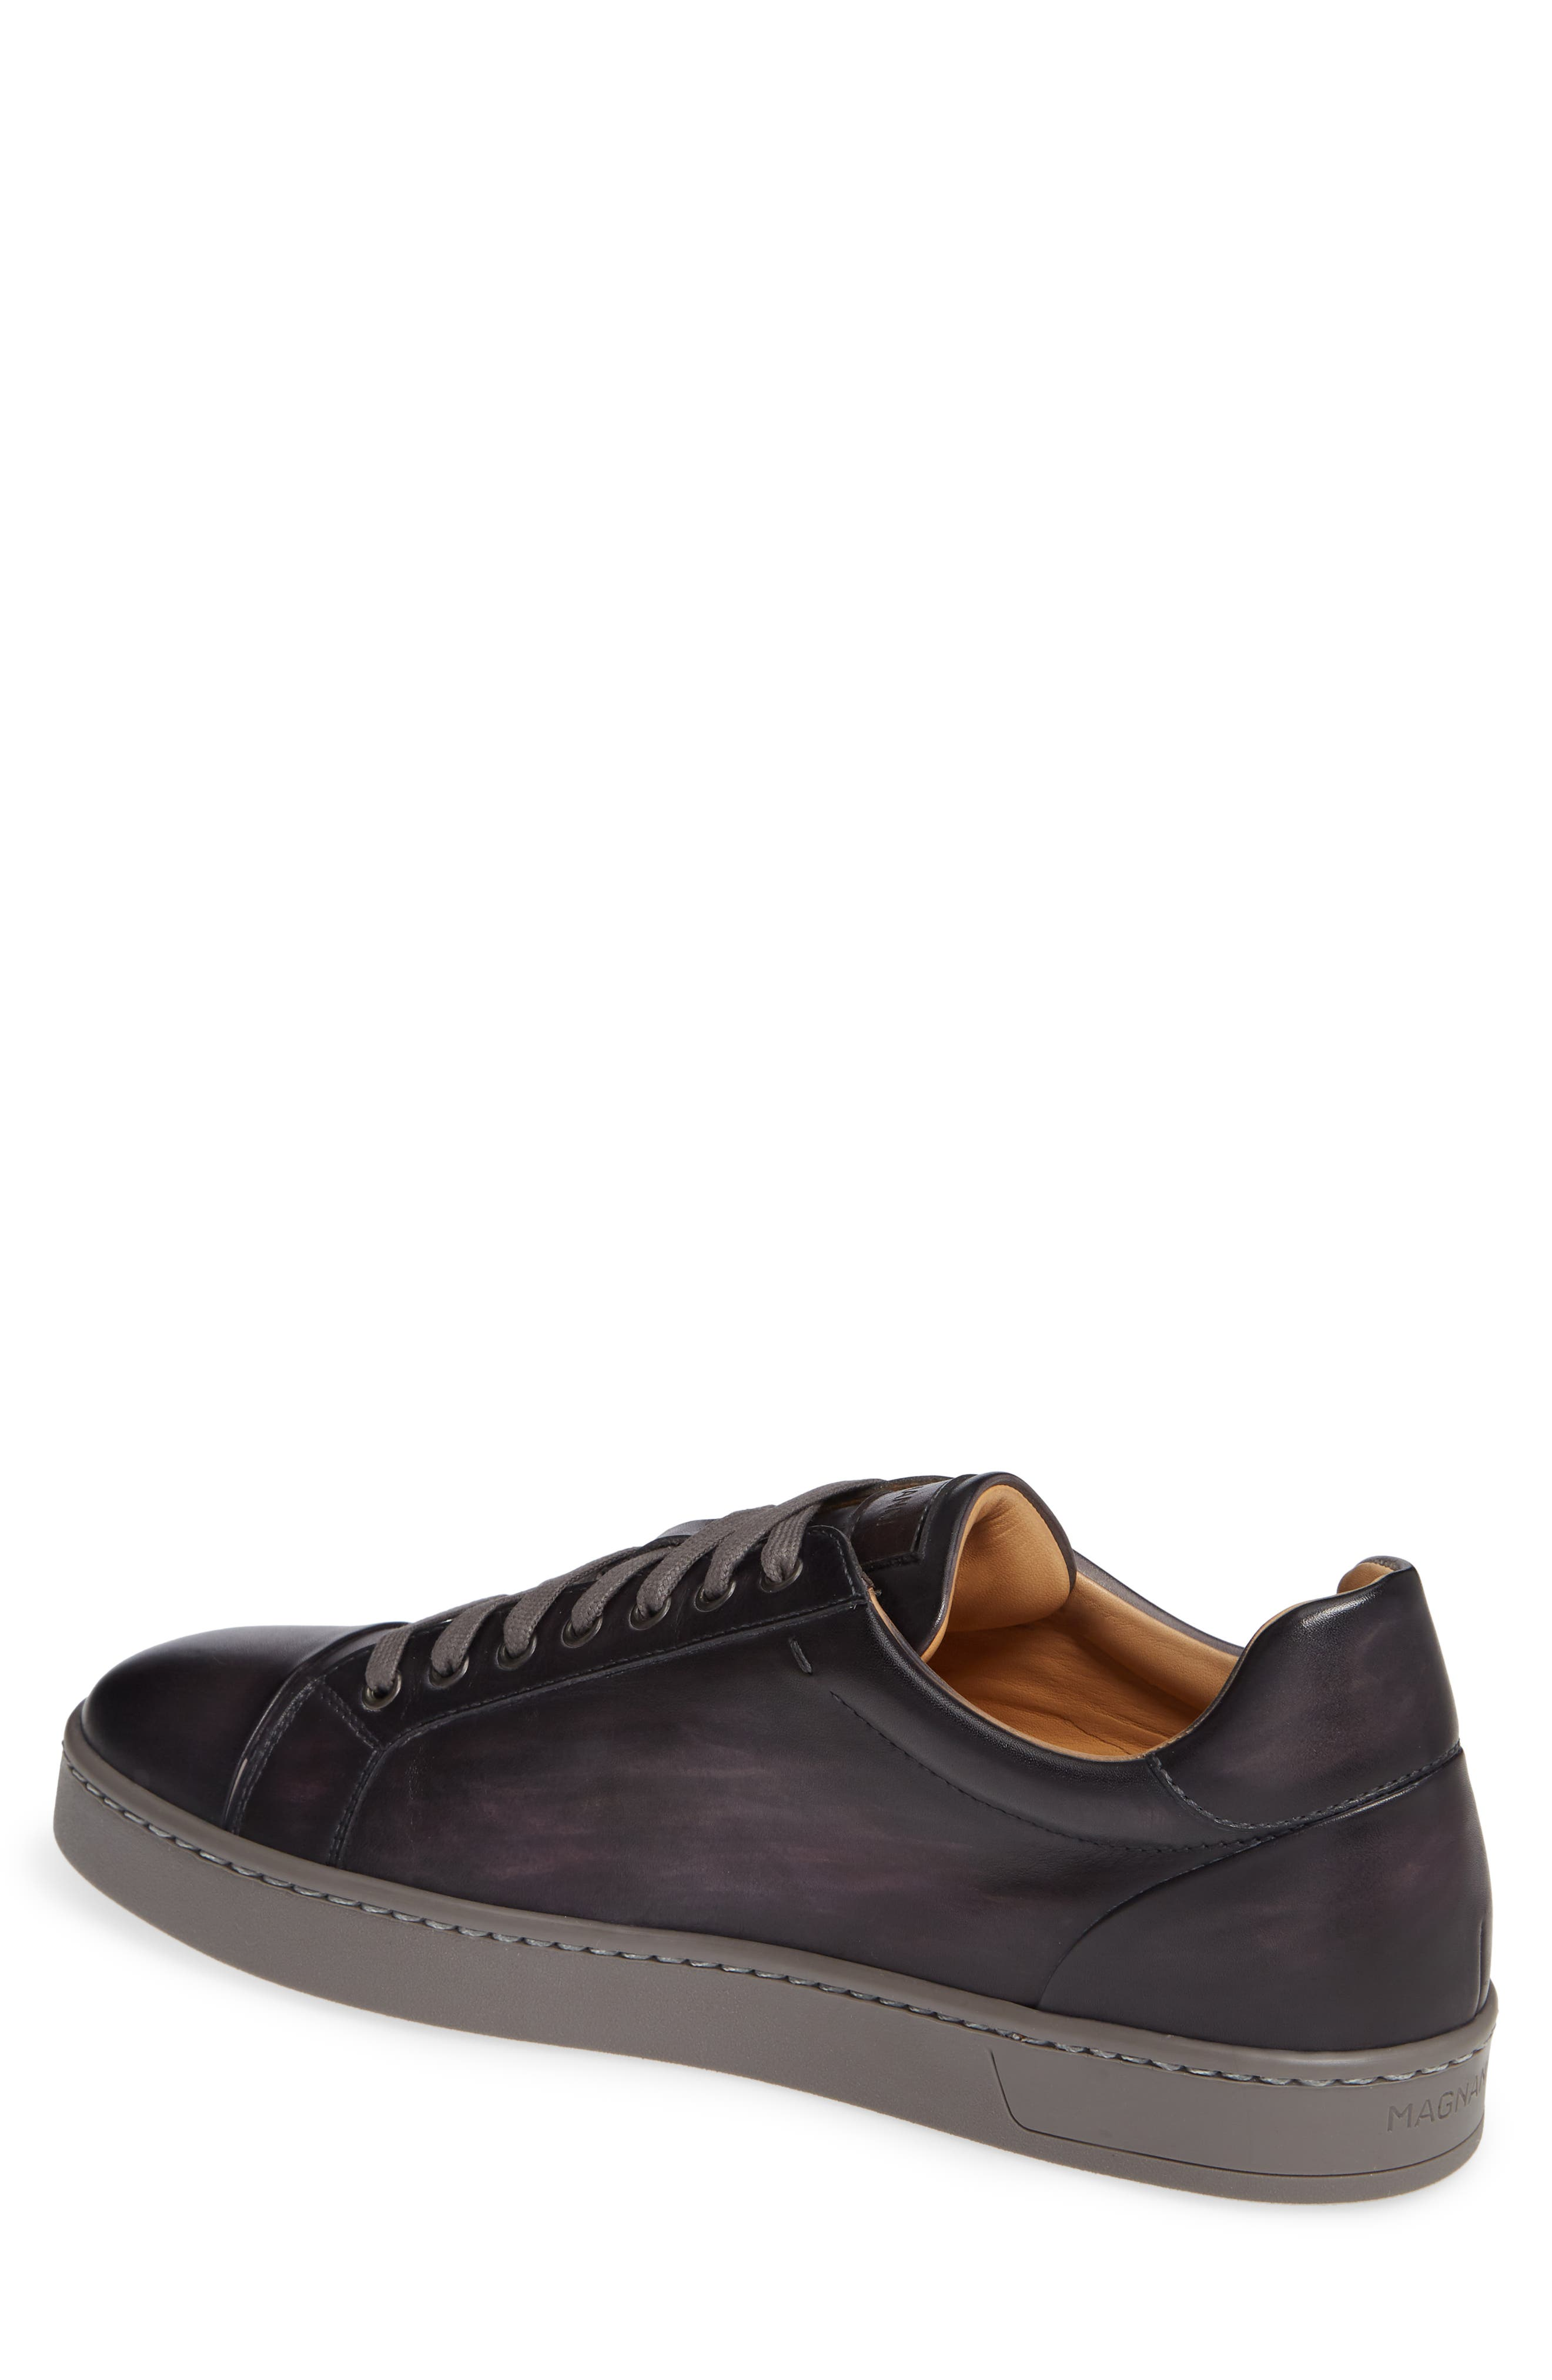 Caitin Sneaker,                             Alternate thumbnail 2, color,                             GREY/ GREY LEATHER